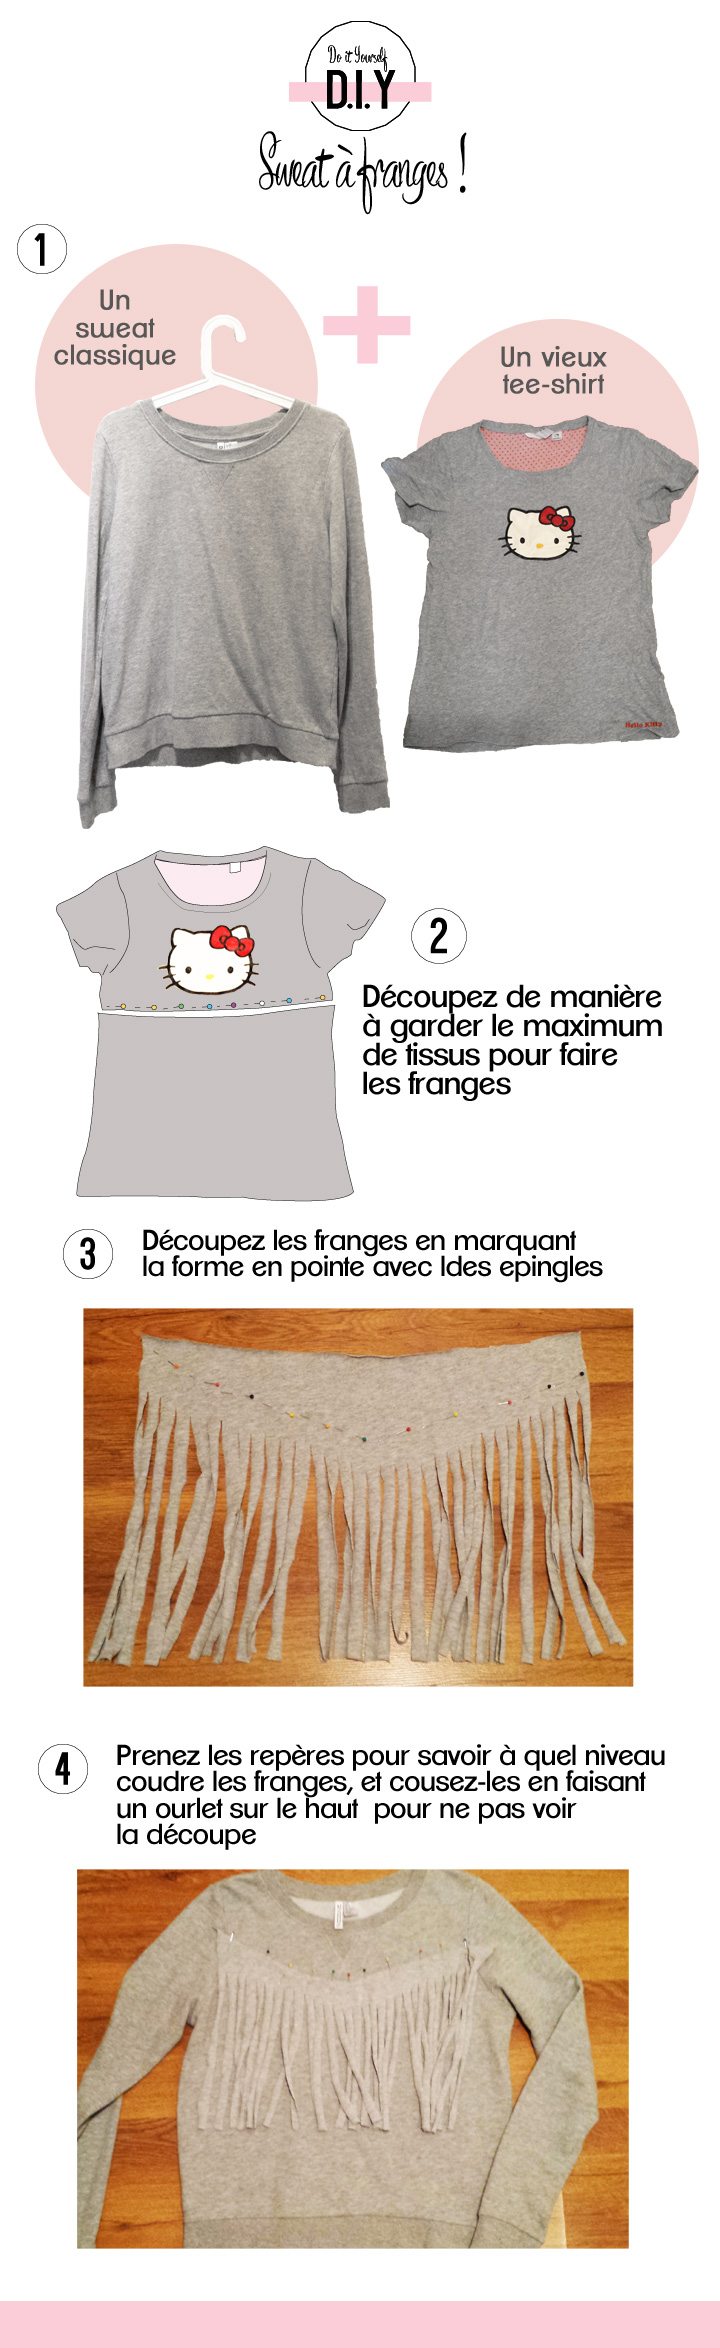 DIY-sweat-franges